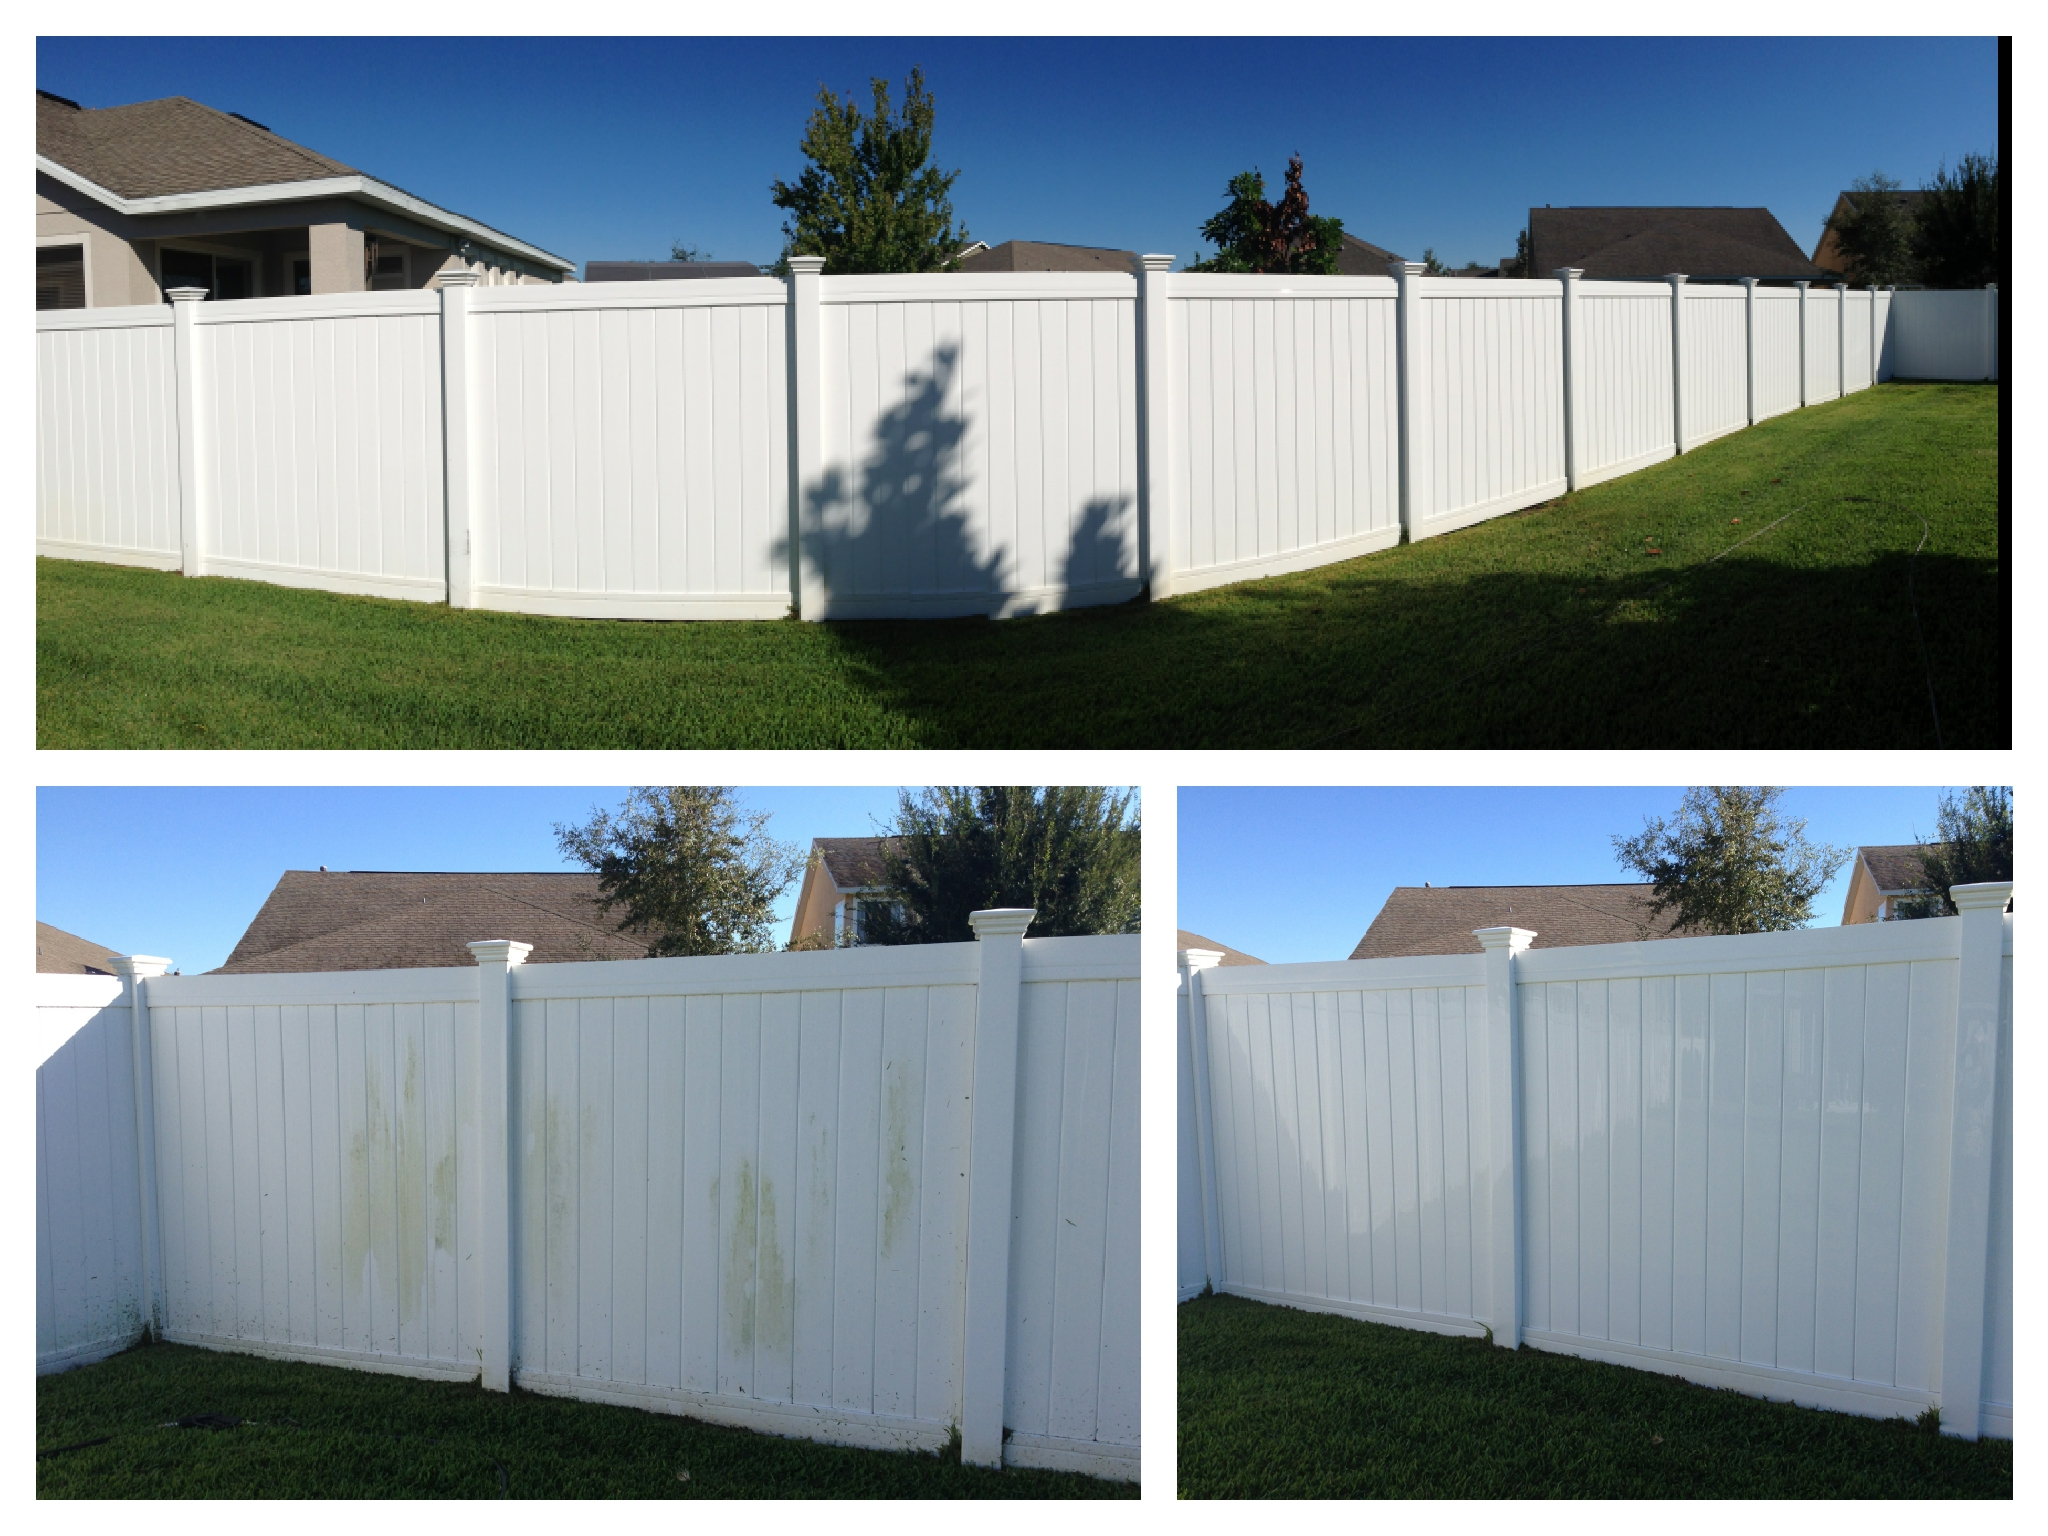 Vinyl Fence Cleaning And Pressure Washing Orlando Wash